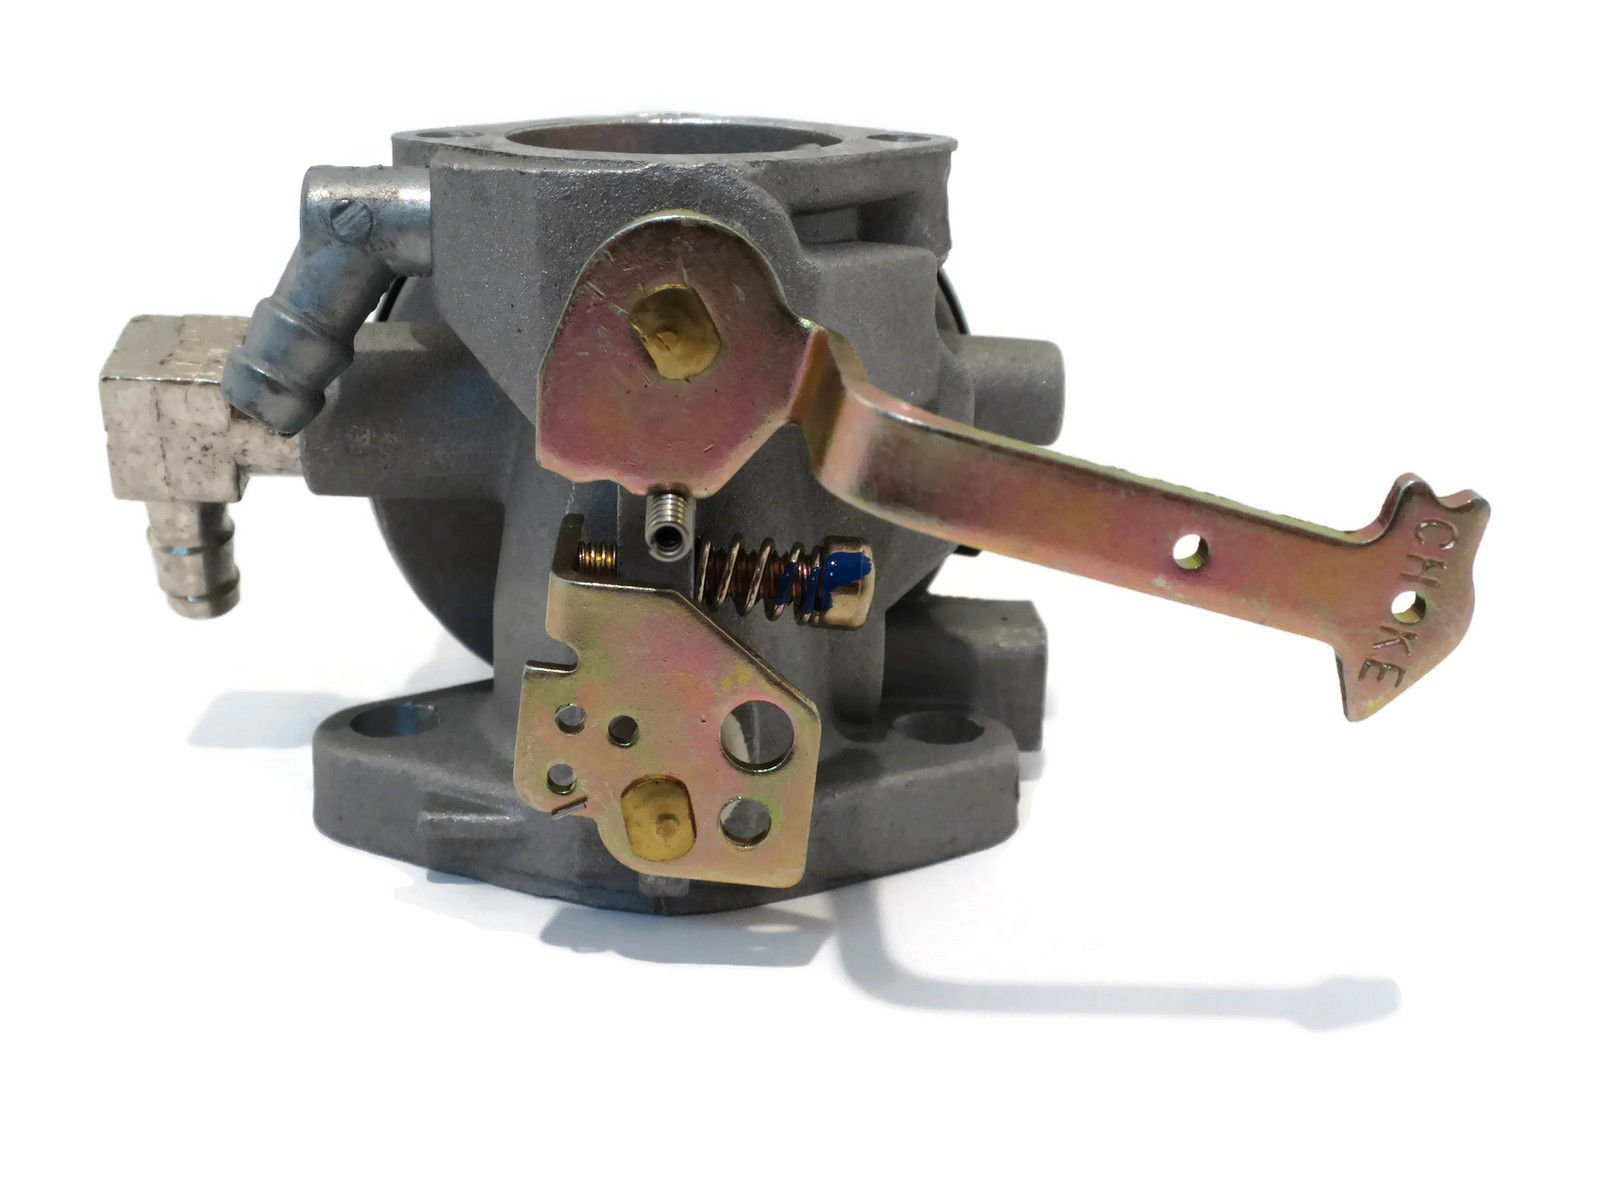 The ROP Shop Carburetor Carb for Tecumseh 640112 Stens 520-954, 056-318 HM80 HM90 HM100 Motor by The ROP Shop (Image #6)